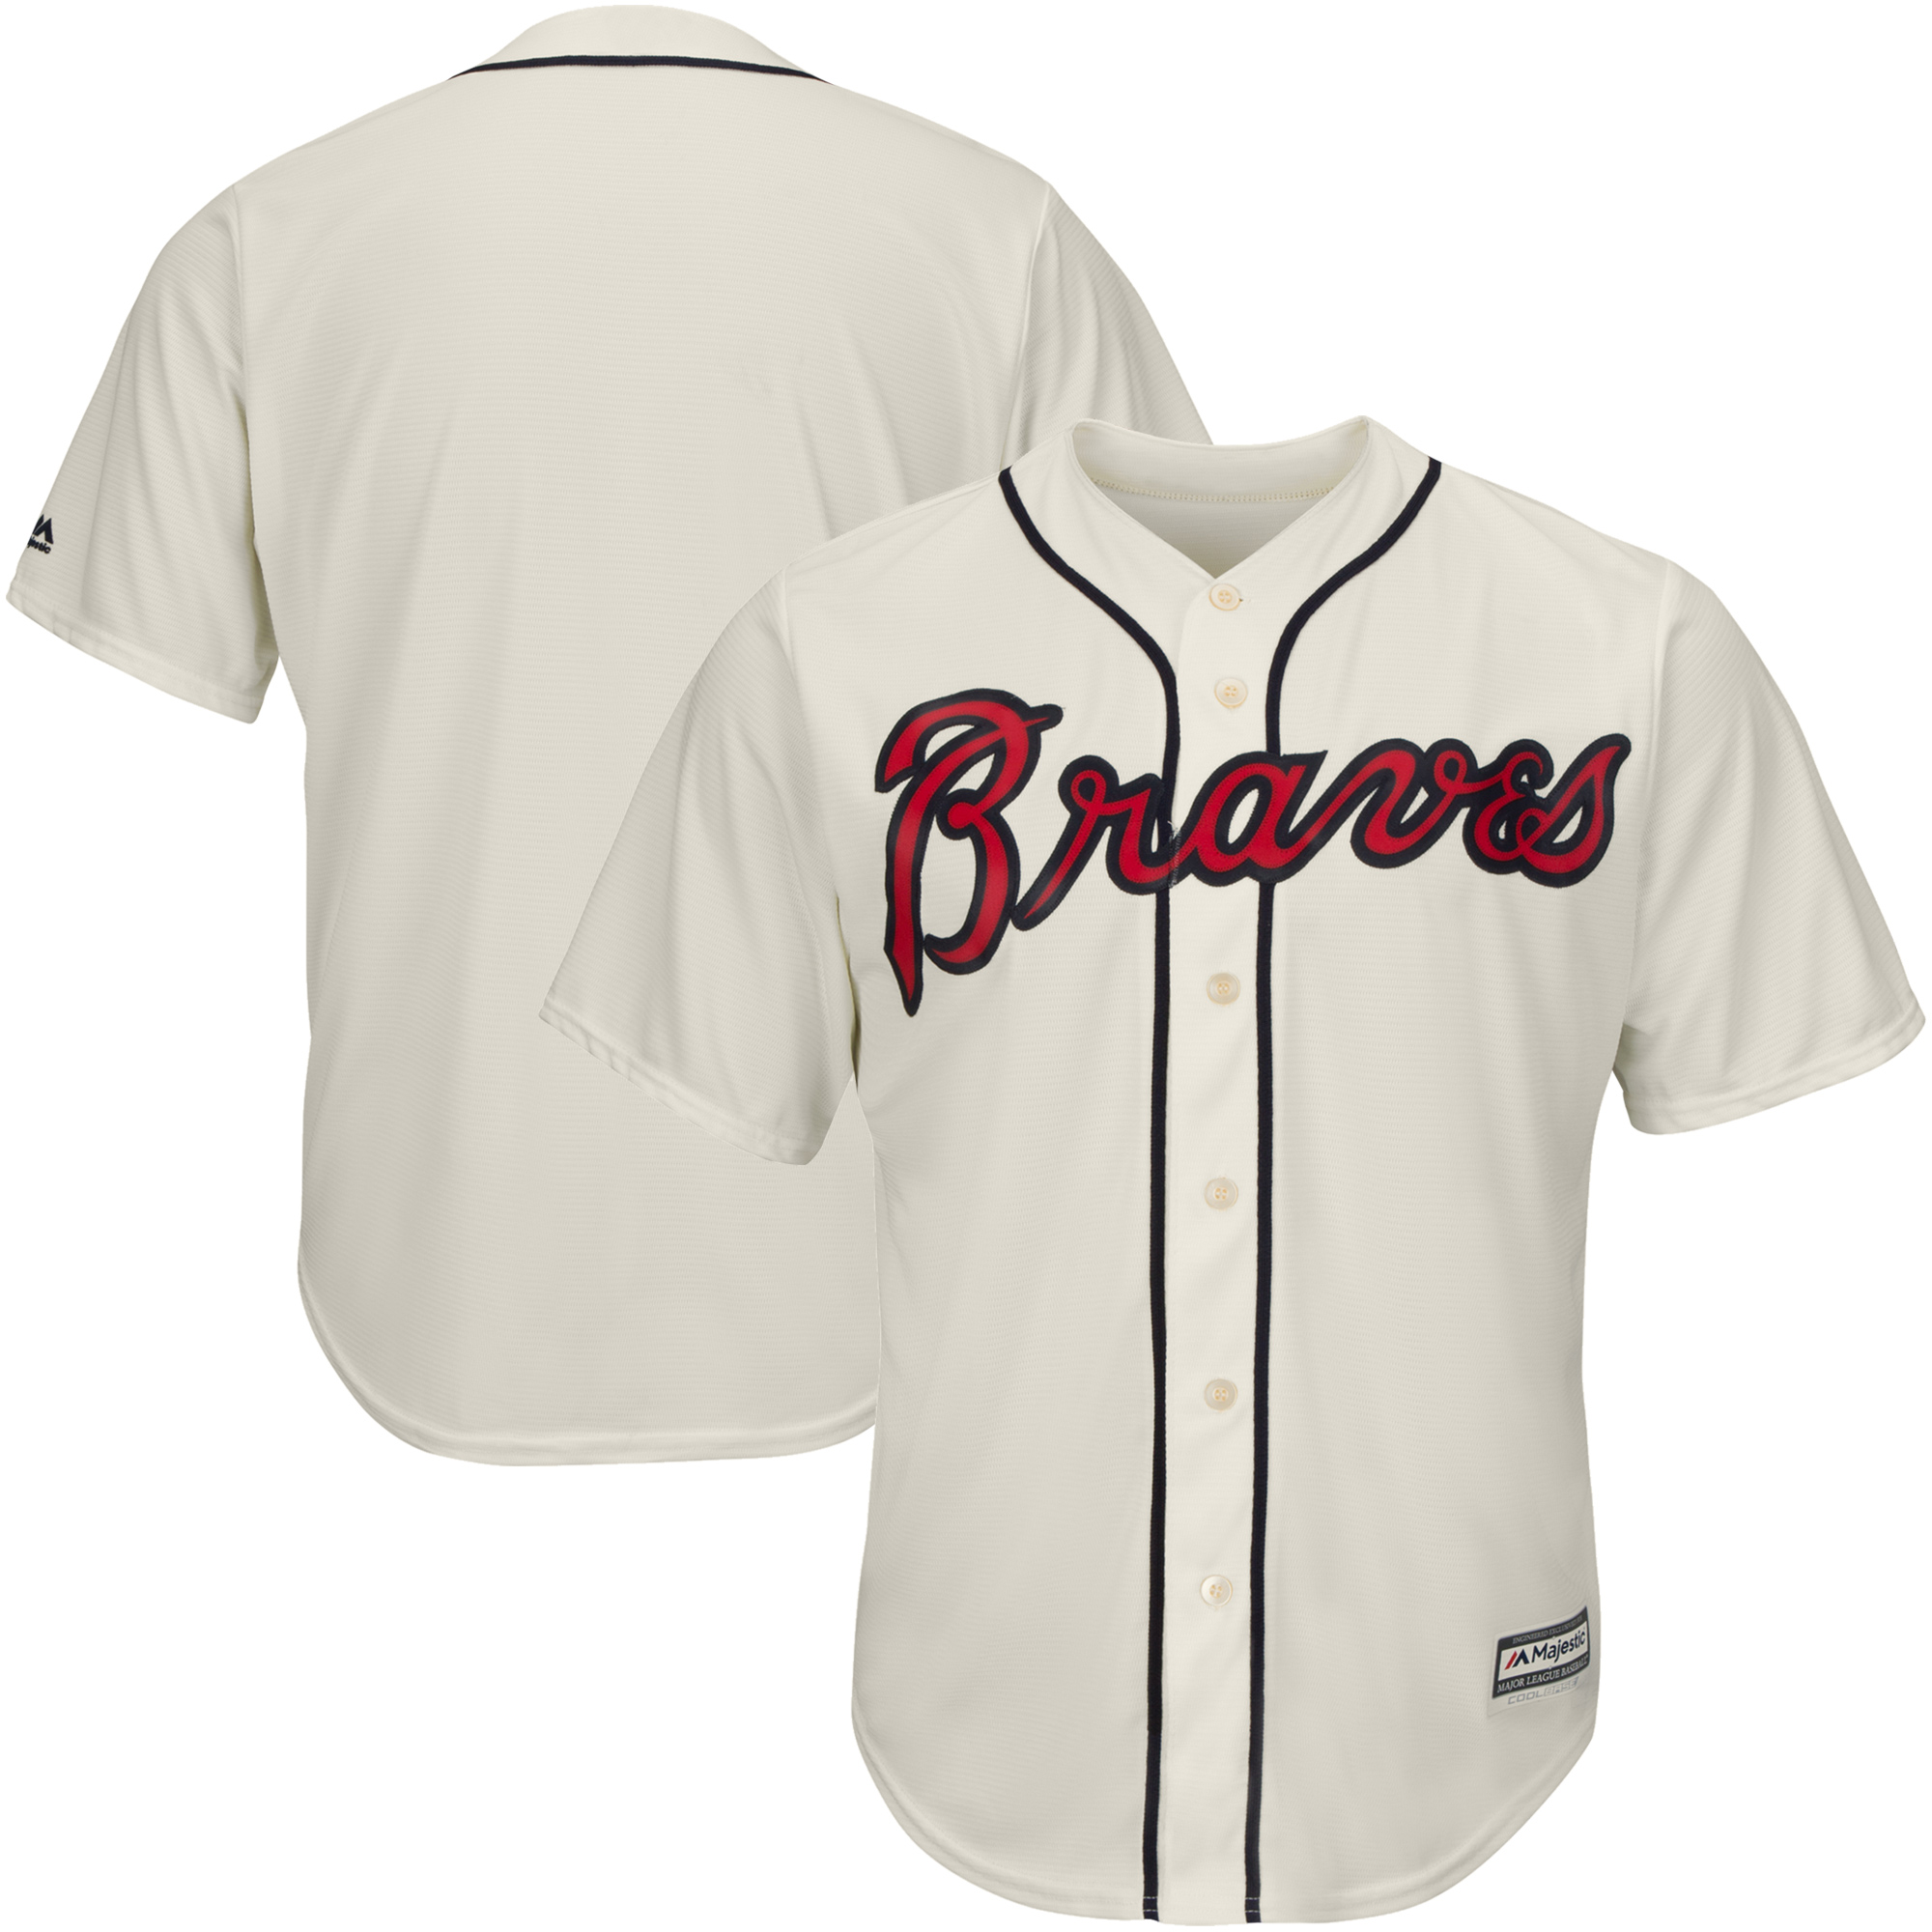 low priced 2c9b0 ab5c4 free shipping atlanta braves majestic jersey 82c0a d0a9d